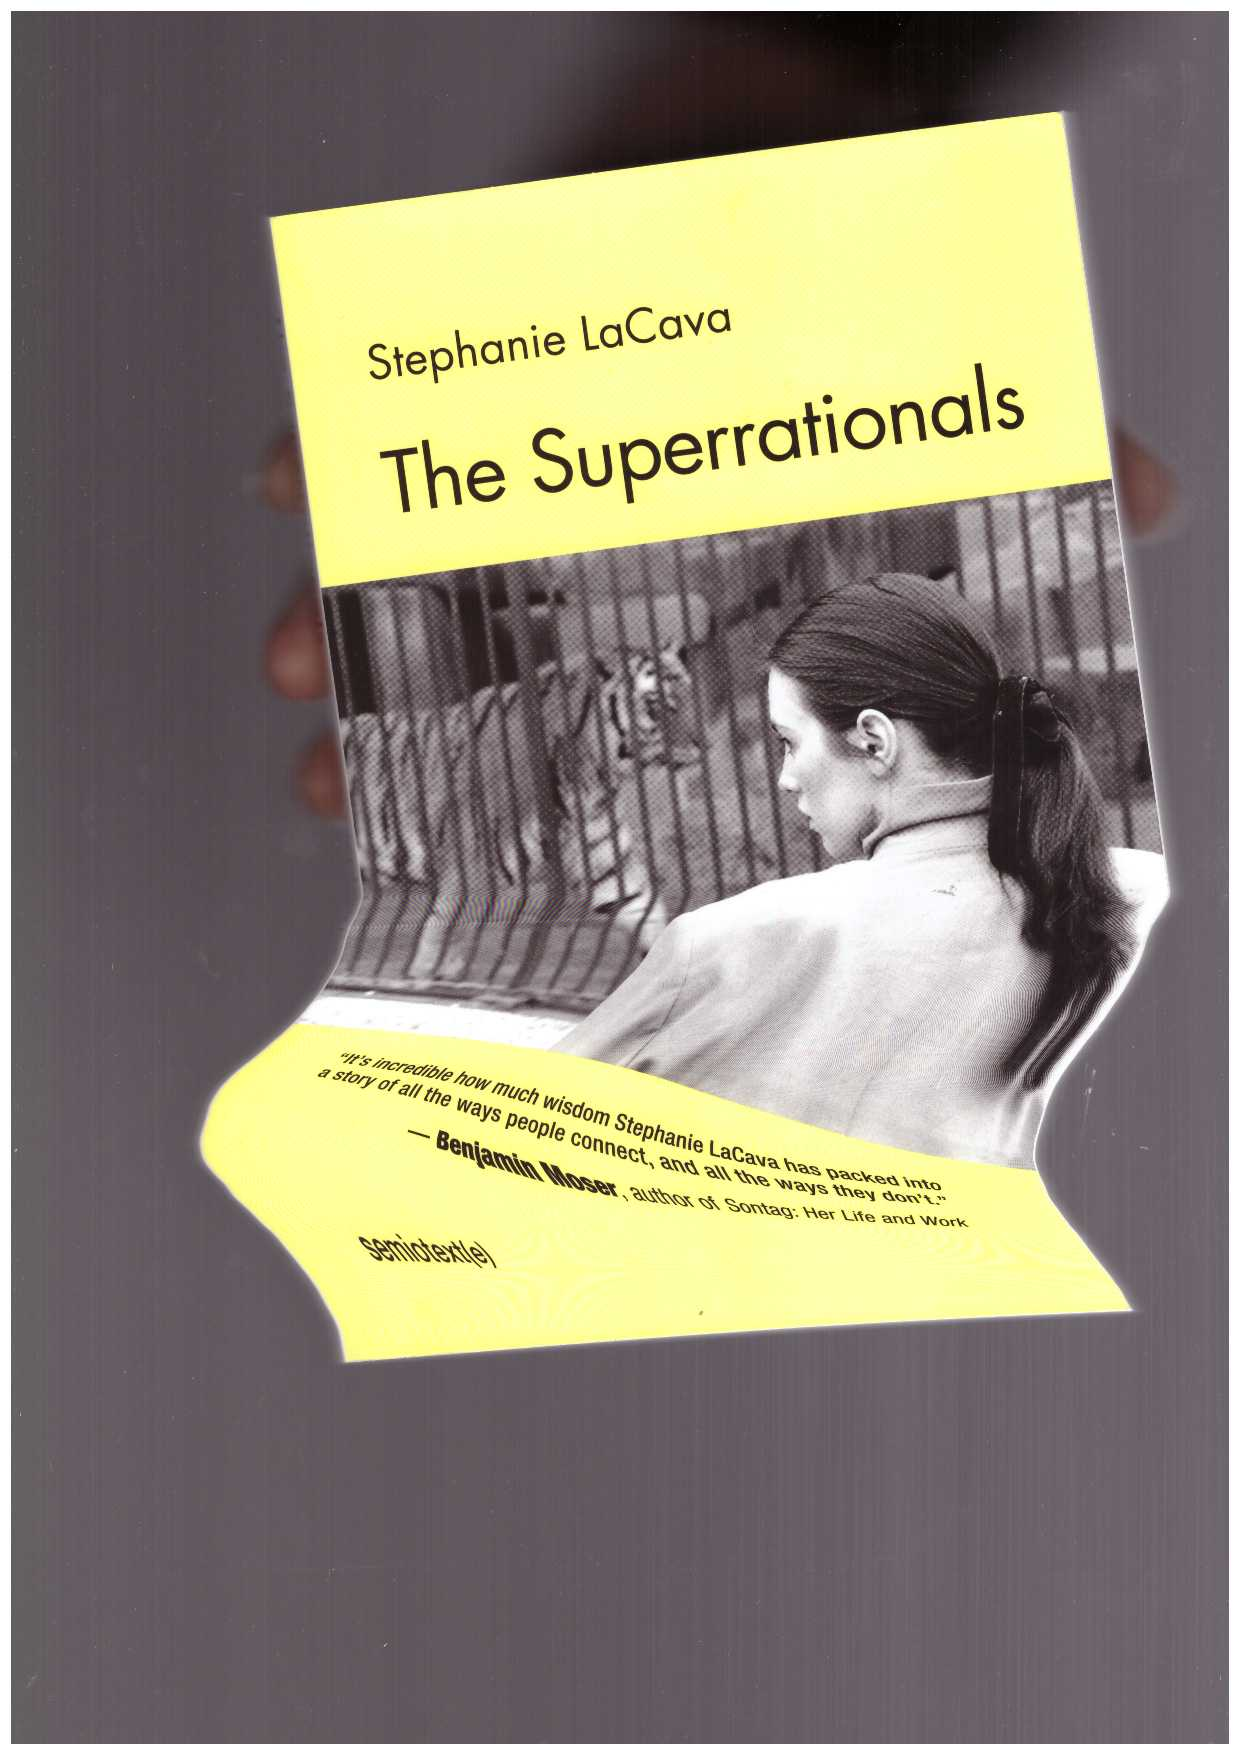 - The Superrationals. Online reading by Stephanie LaCava in conversation with Chris Kraus